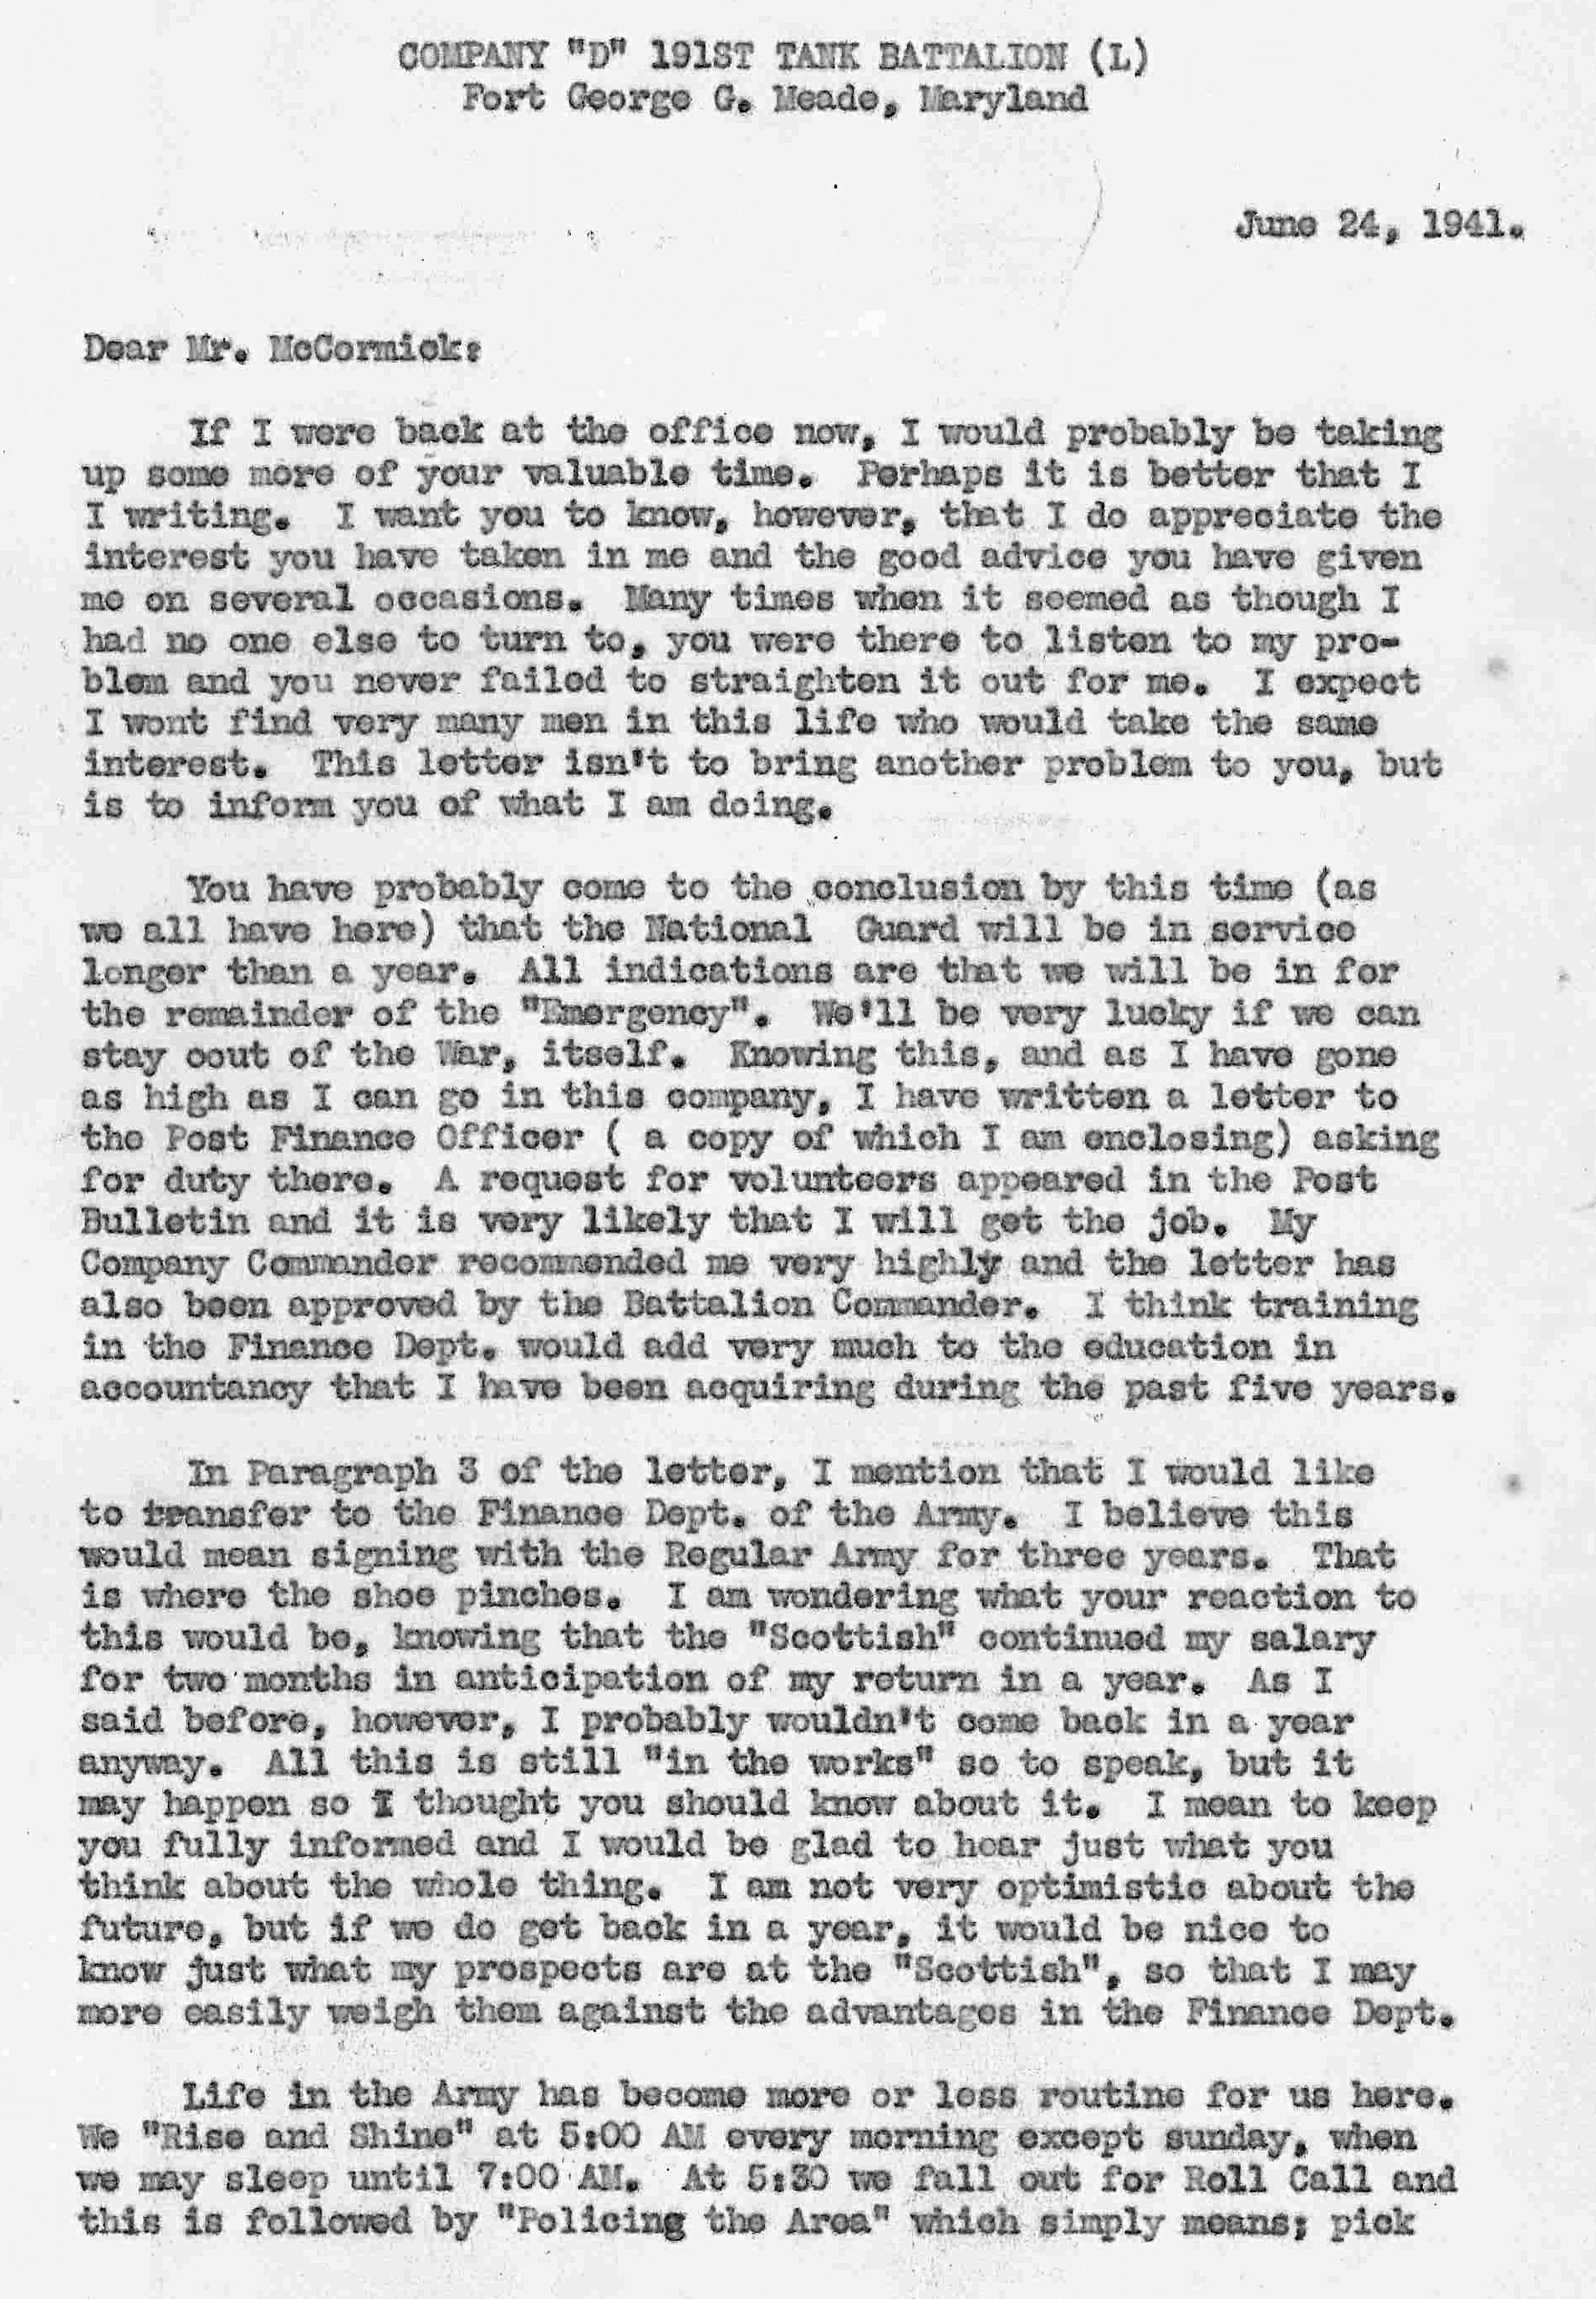 dads service letter of june 24 1941 page 1